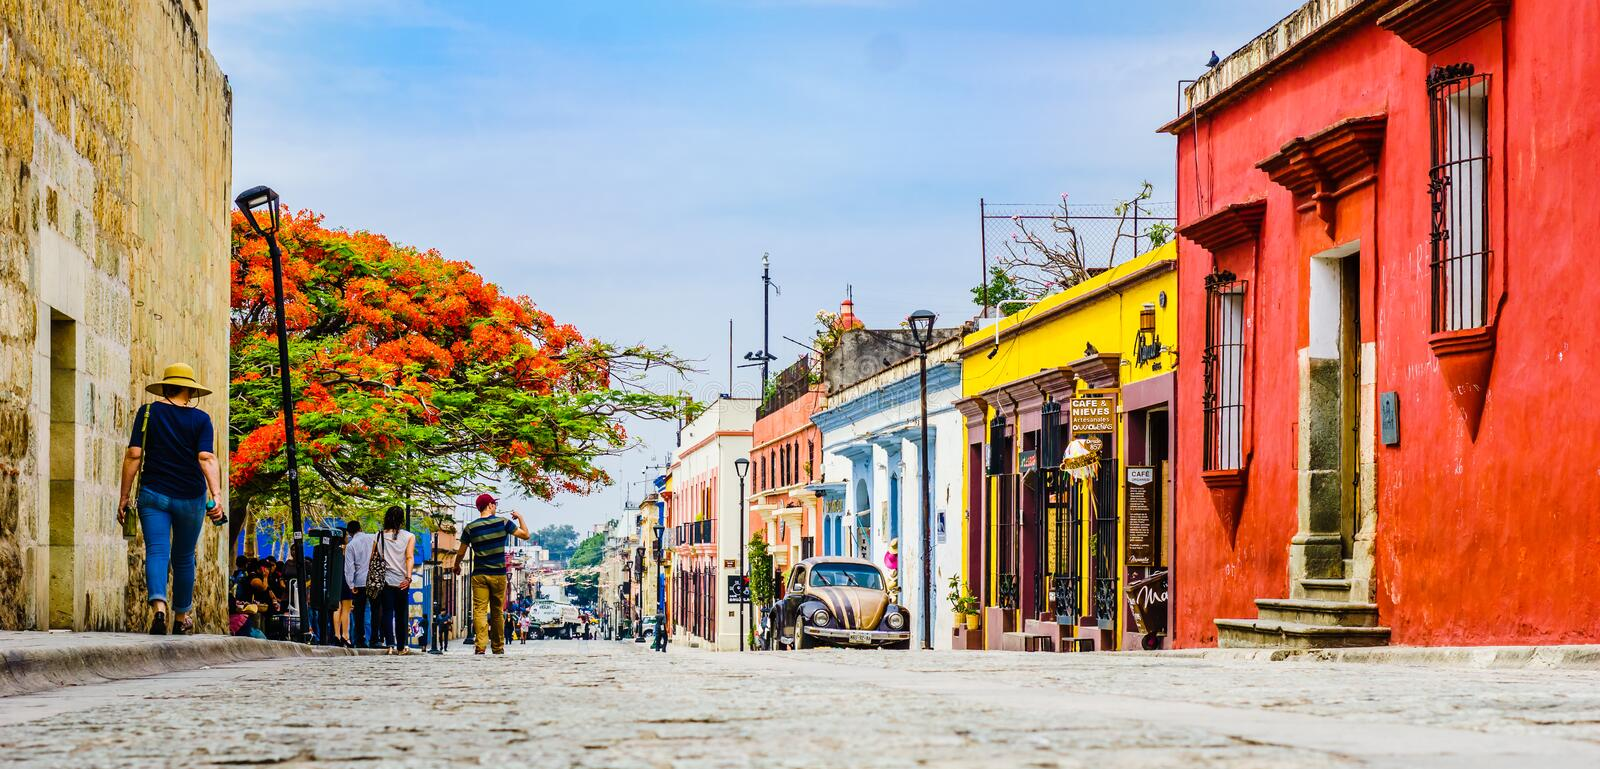 Oaxaca, Mexico on 24th April 2016: Street with Colorful colonial buildings in th eold town with a group of people stock photo